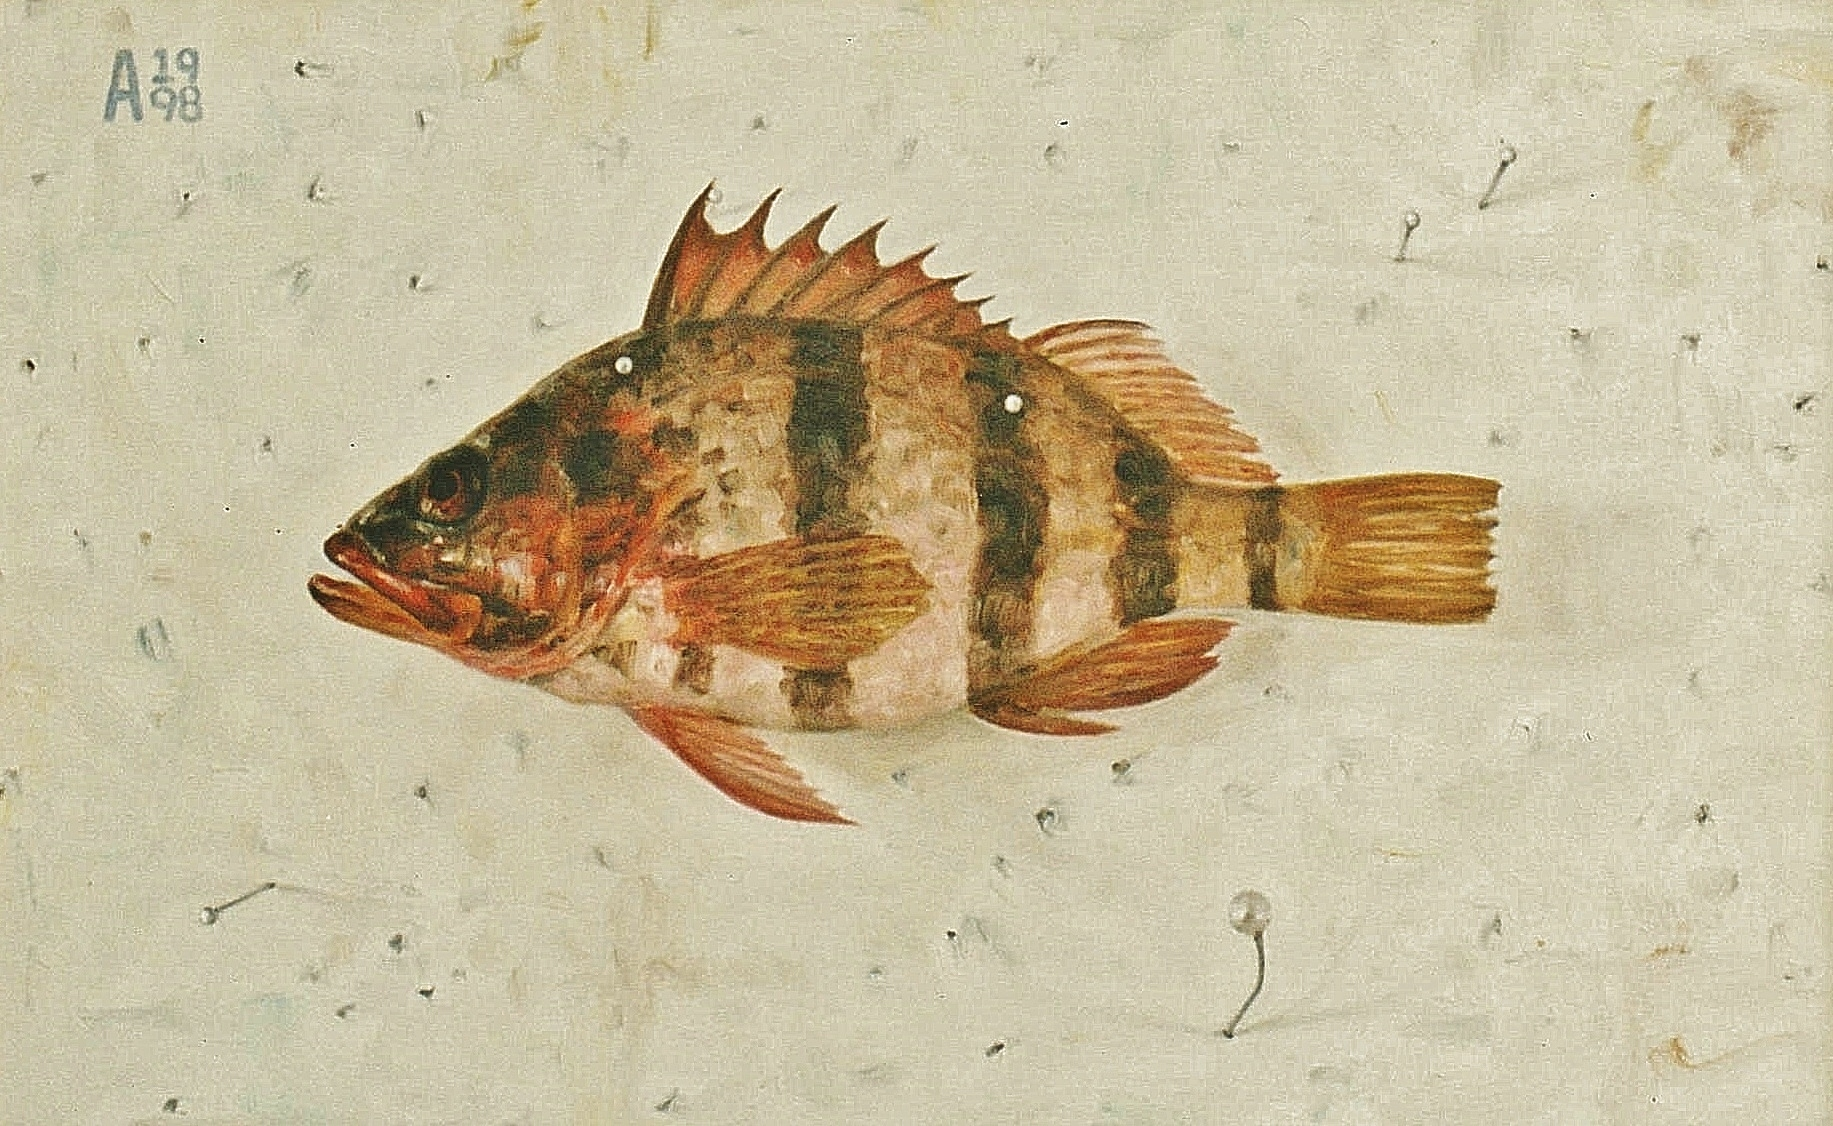 Banded Cod